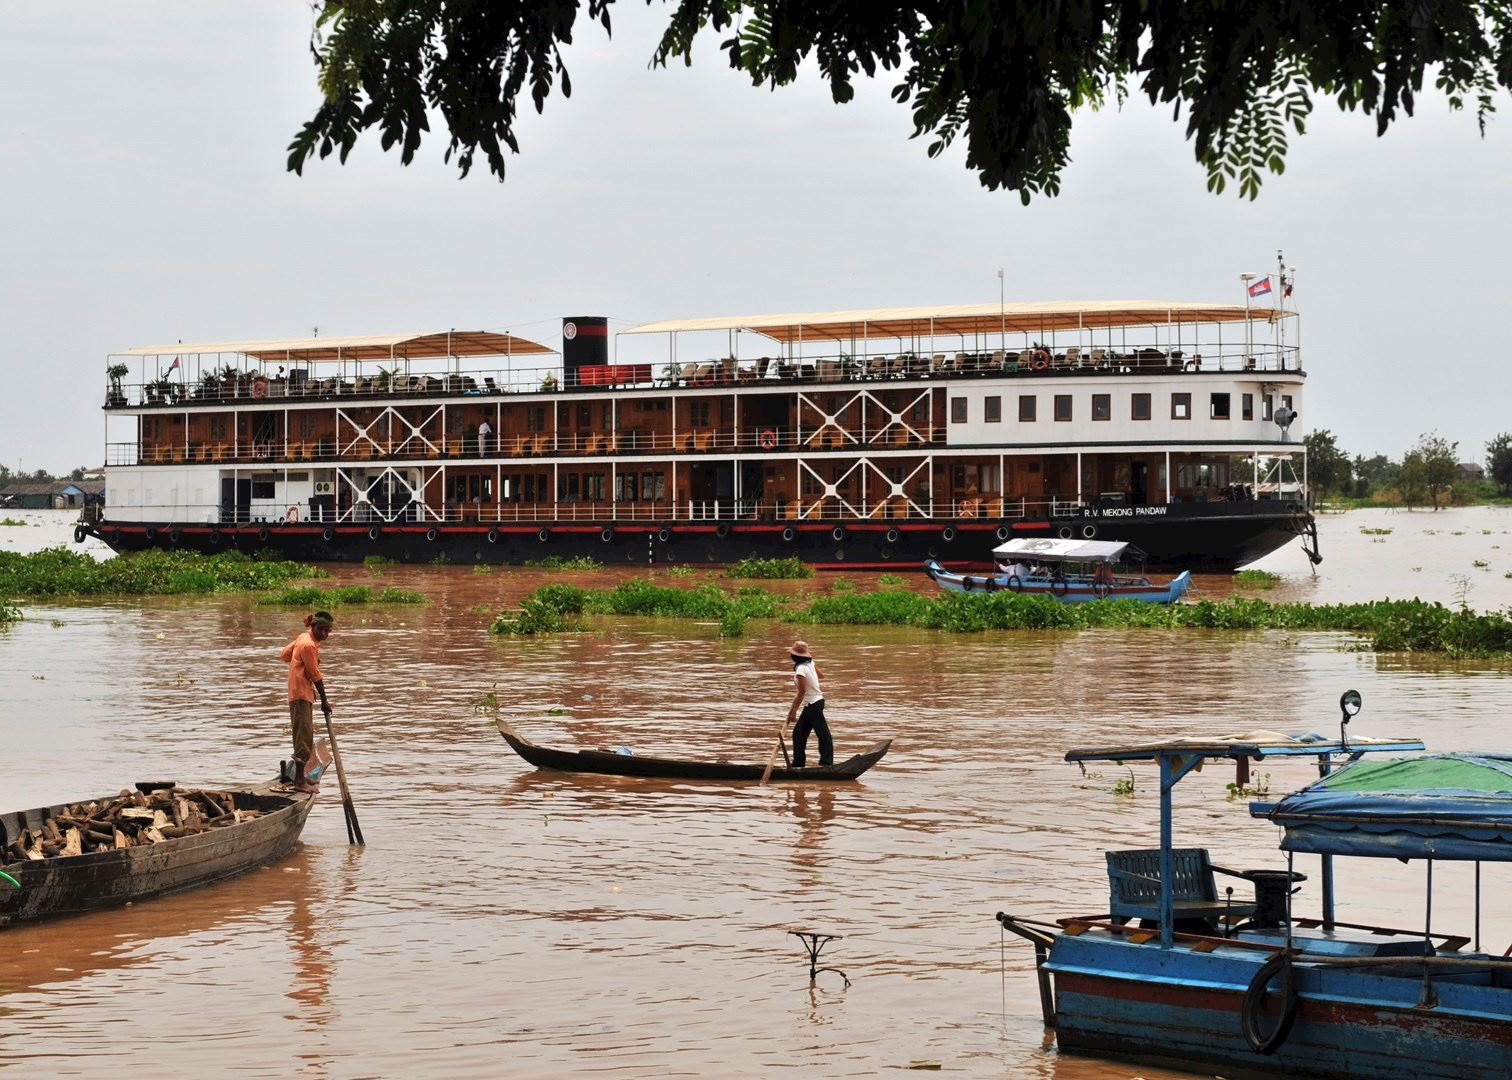 Saigon to Siem Reap: crusing on the Mekong | Audley Travel